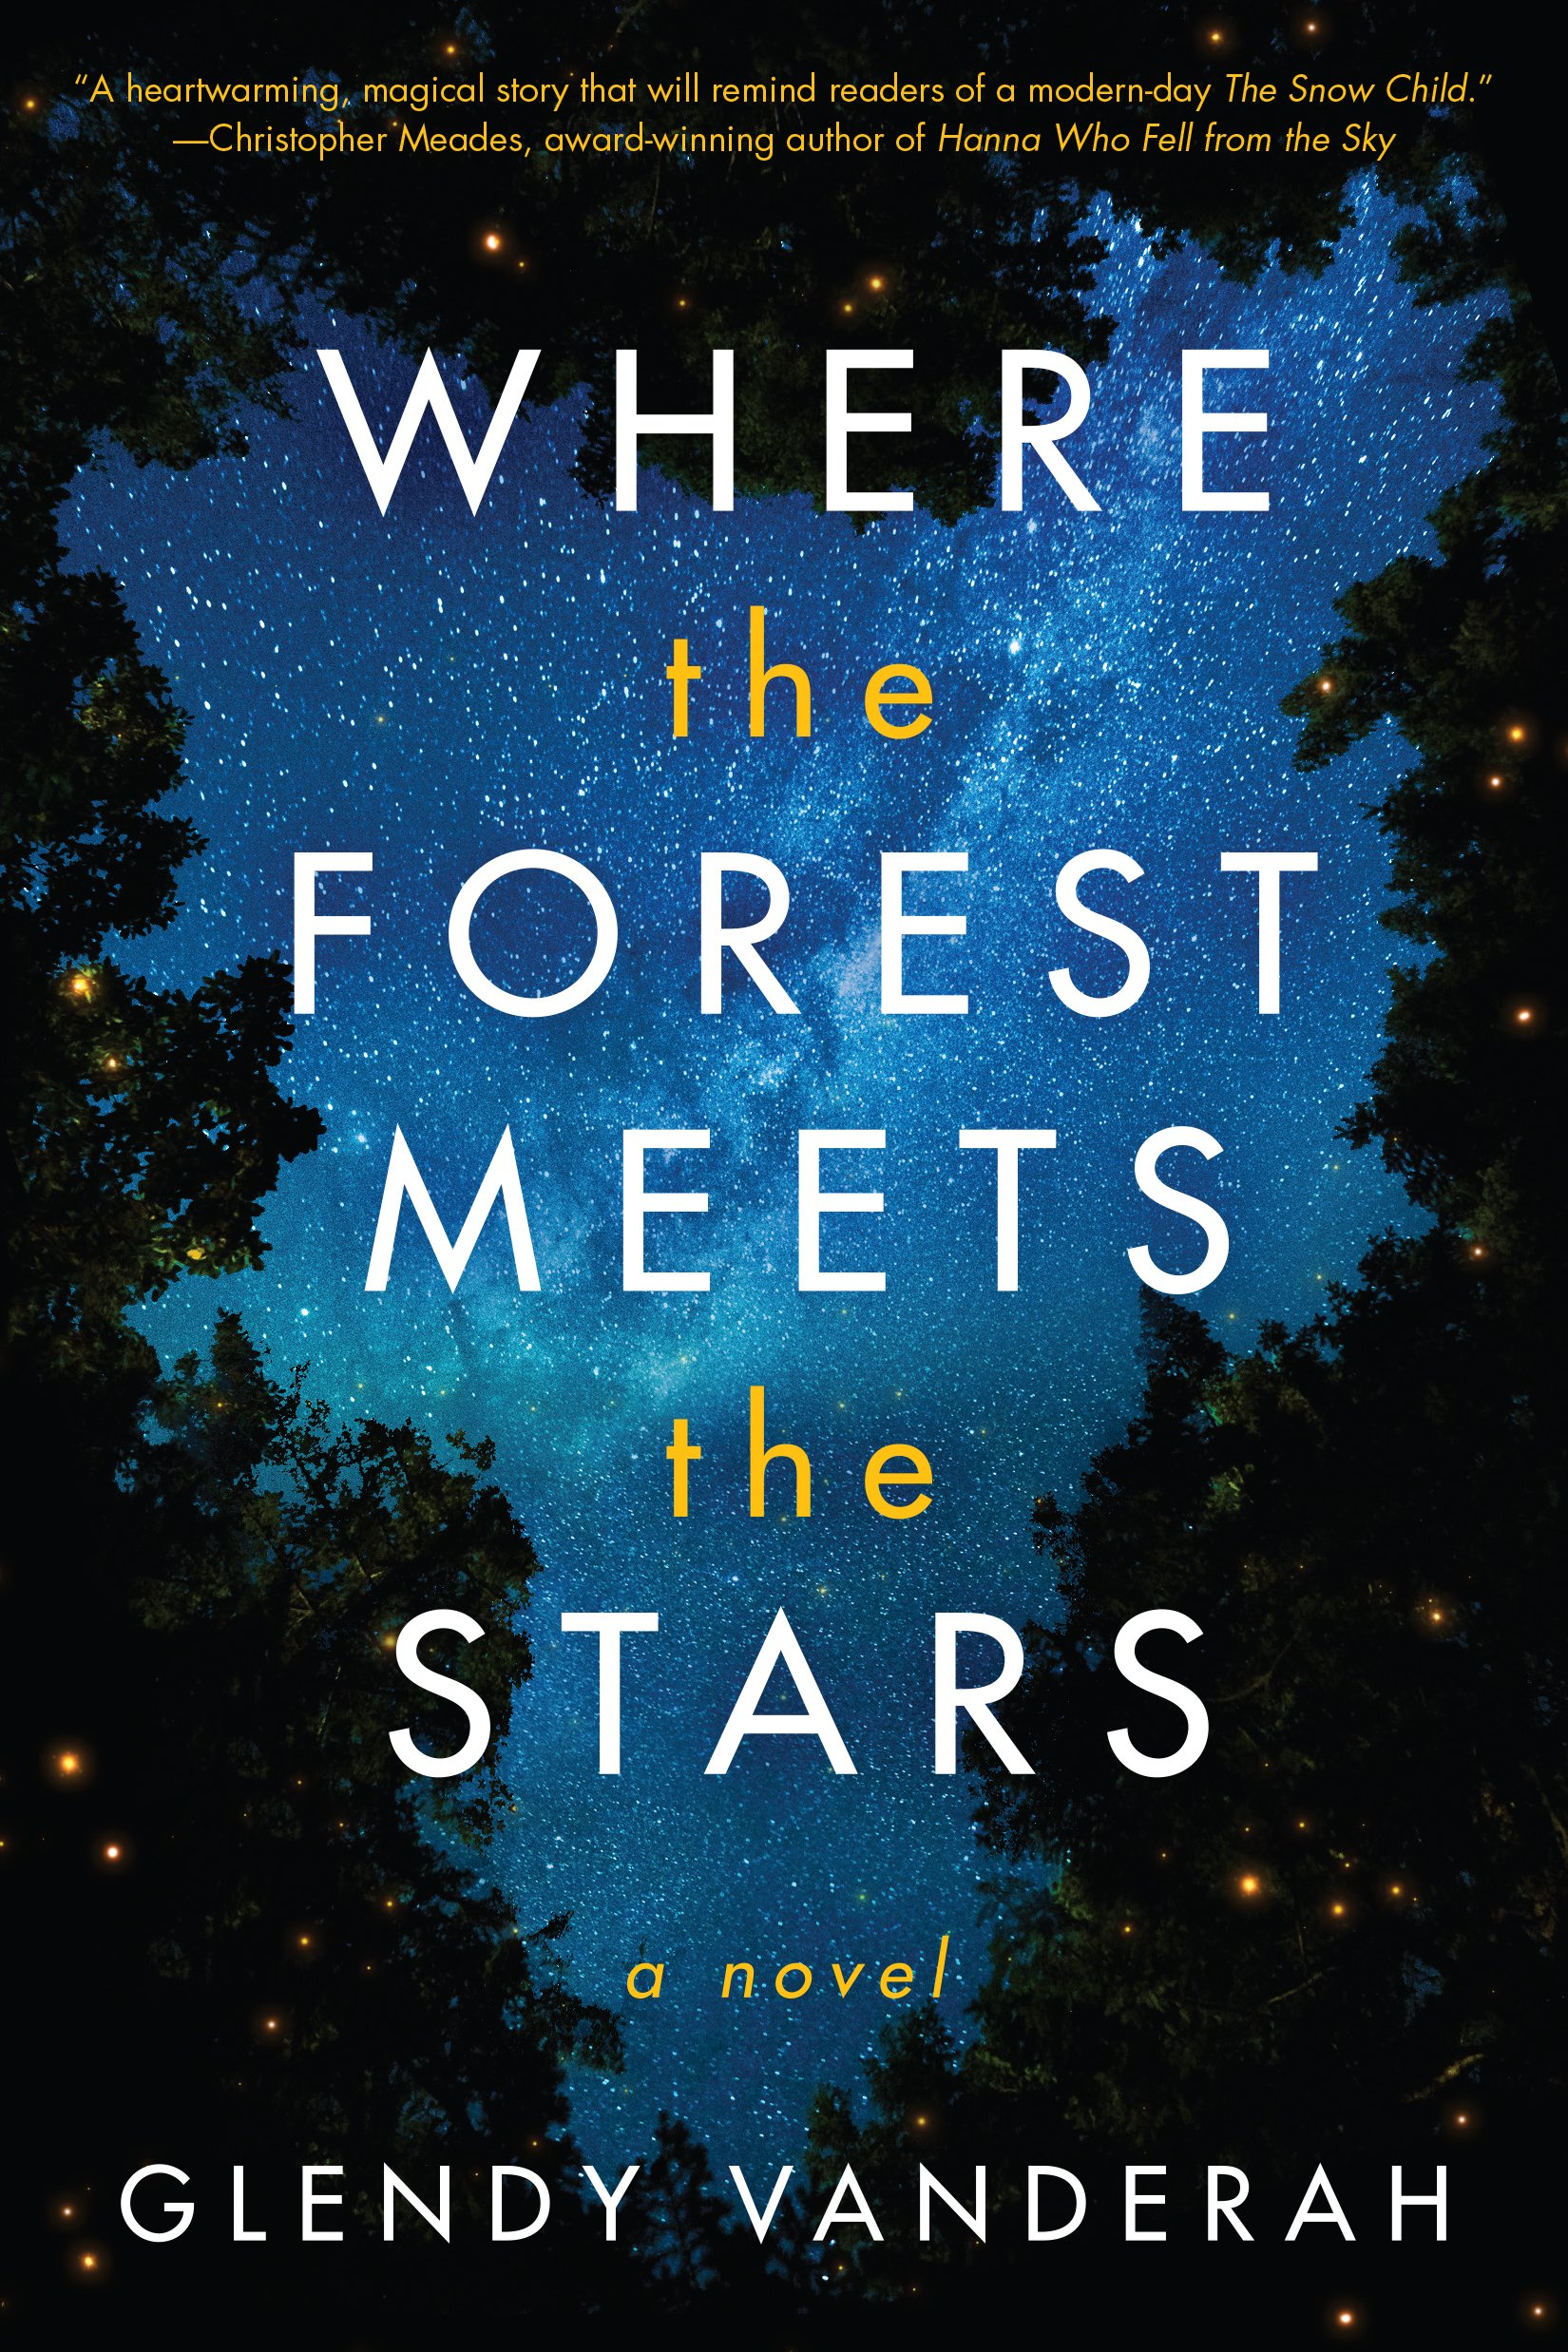 WHERE THE FOREST MEETS THE STARS by Glendy Vanderah